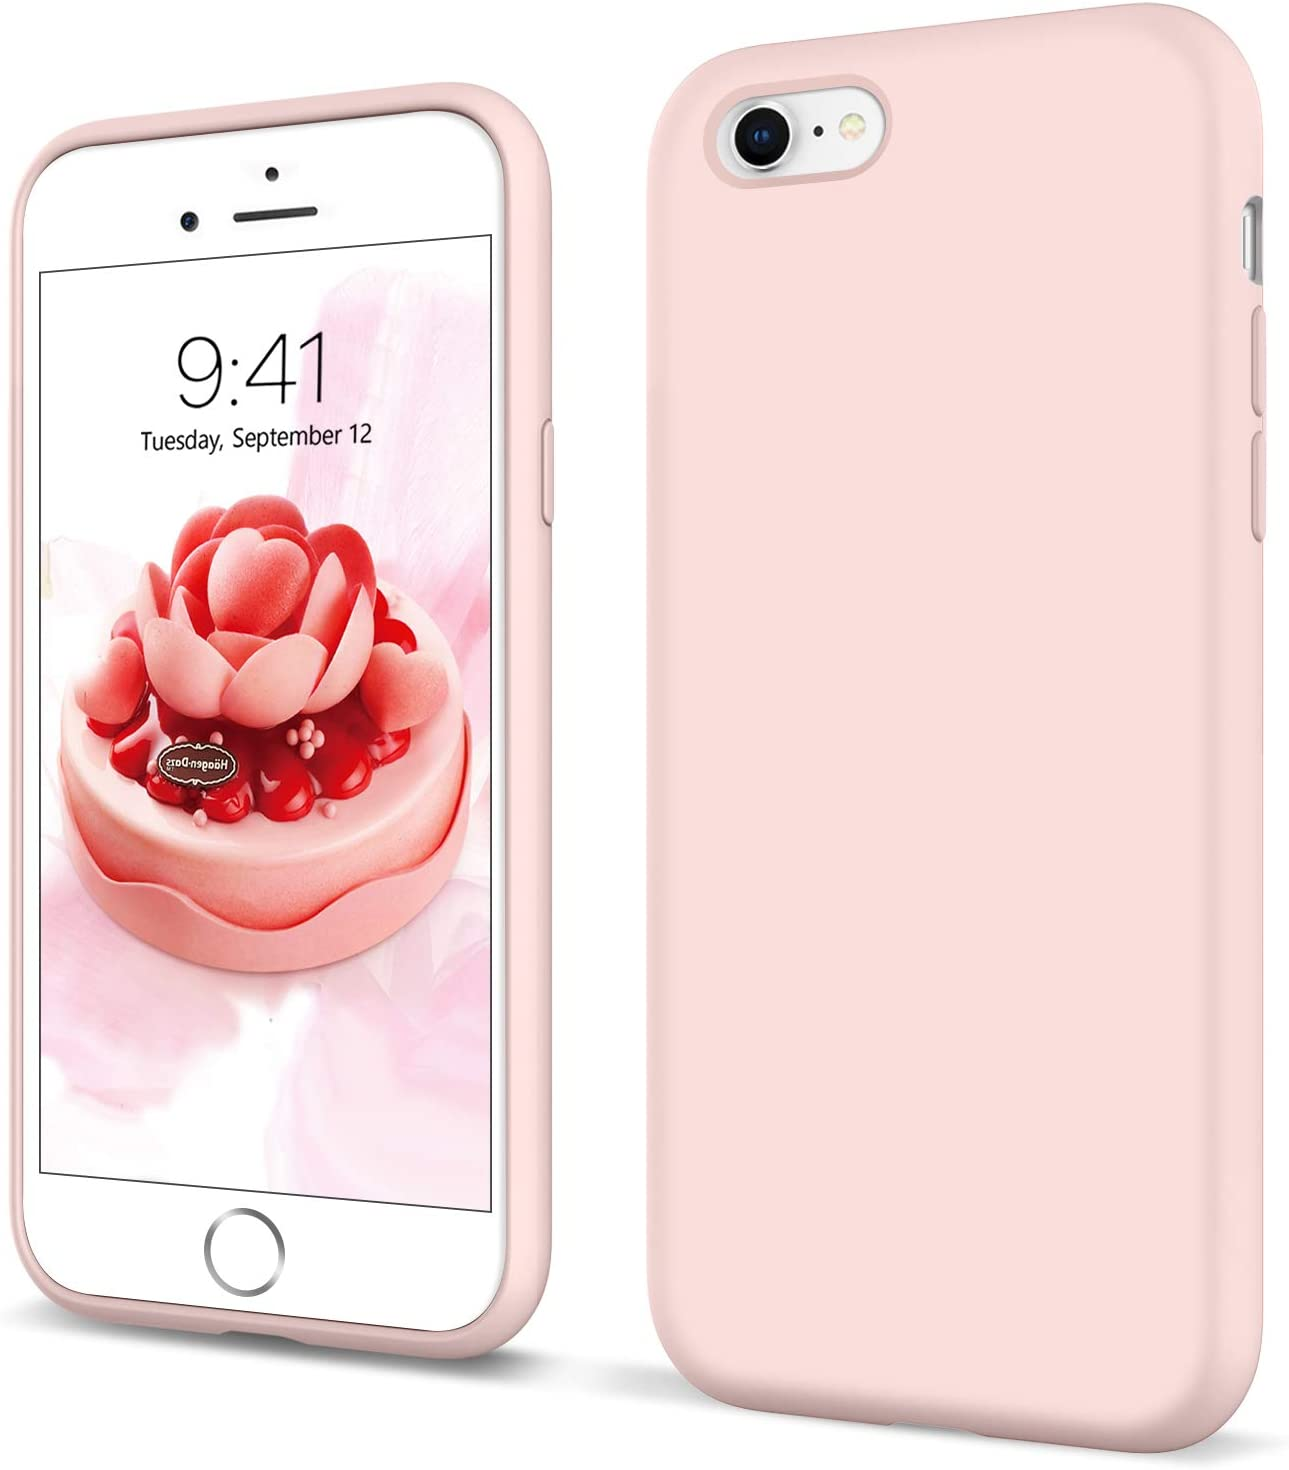 YINLAI iPhone 6S Case iPhone 6 Case Liquid Silicone Soft Rubber Cover Non Slip Microfiber Cloth Lining Cushion Shockproof Protective Durable Phone Case for iPhone 6/6S,Pastel Pink